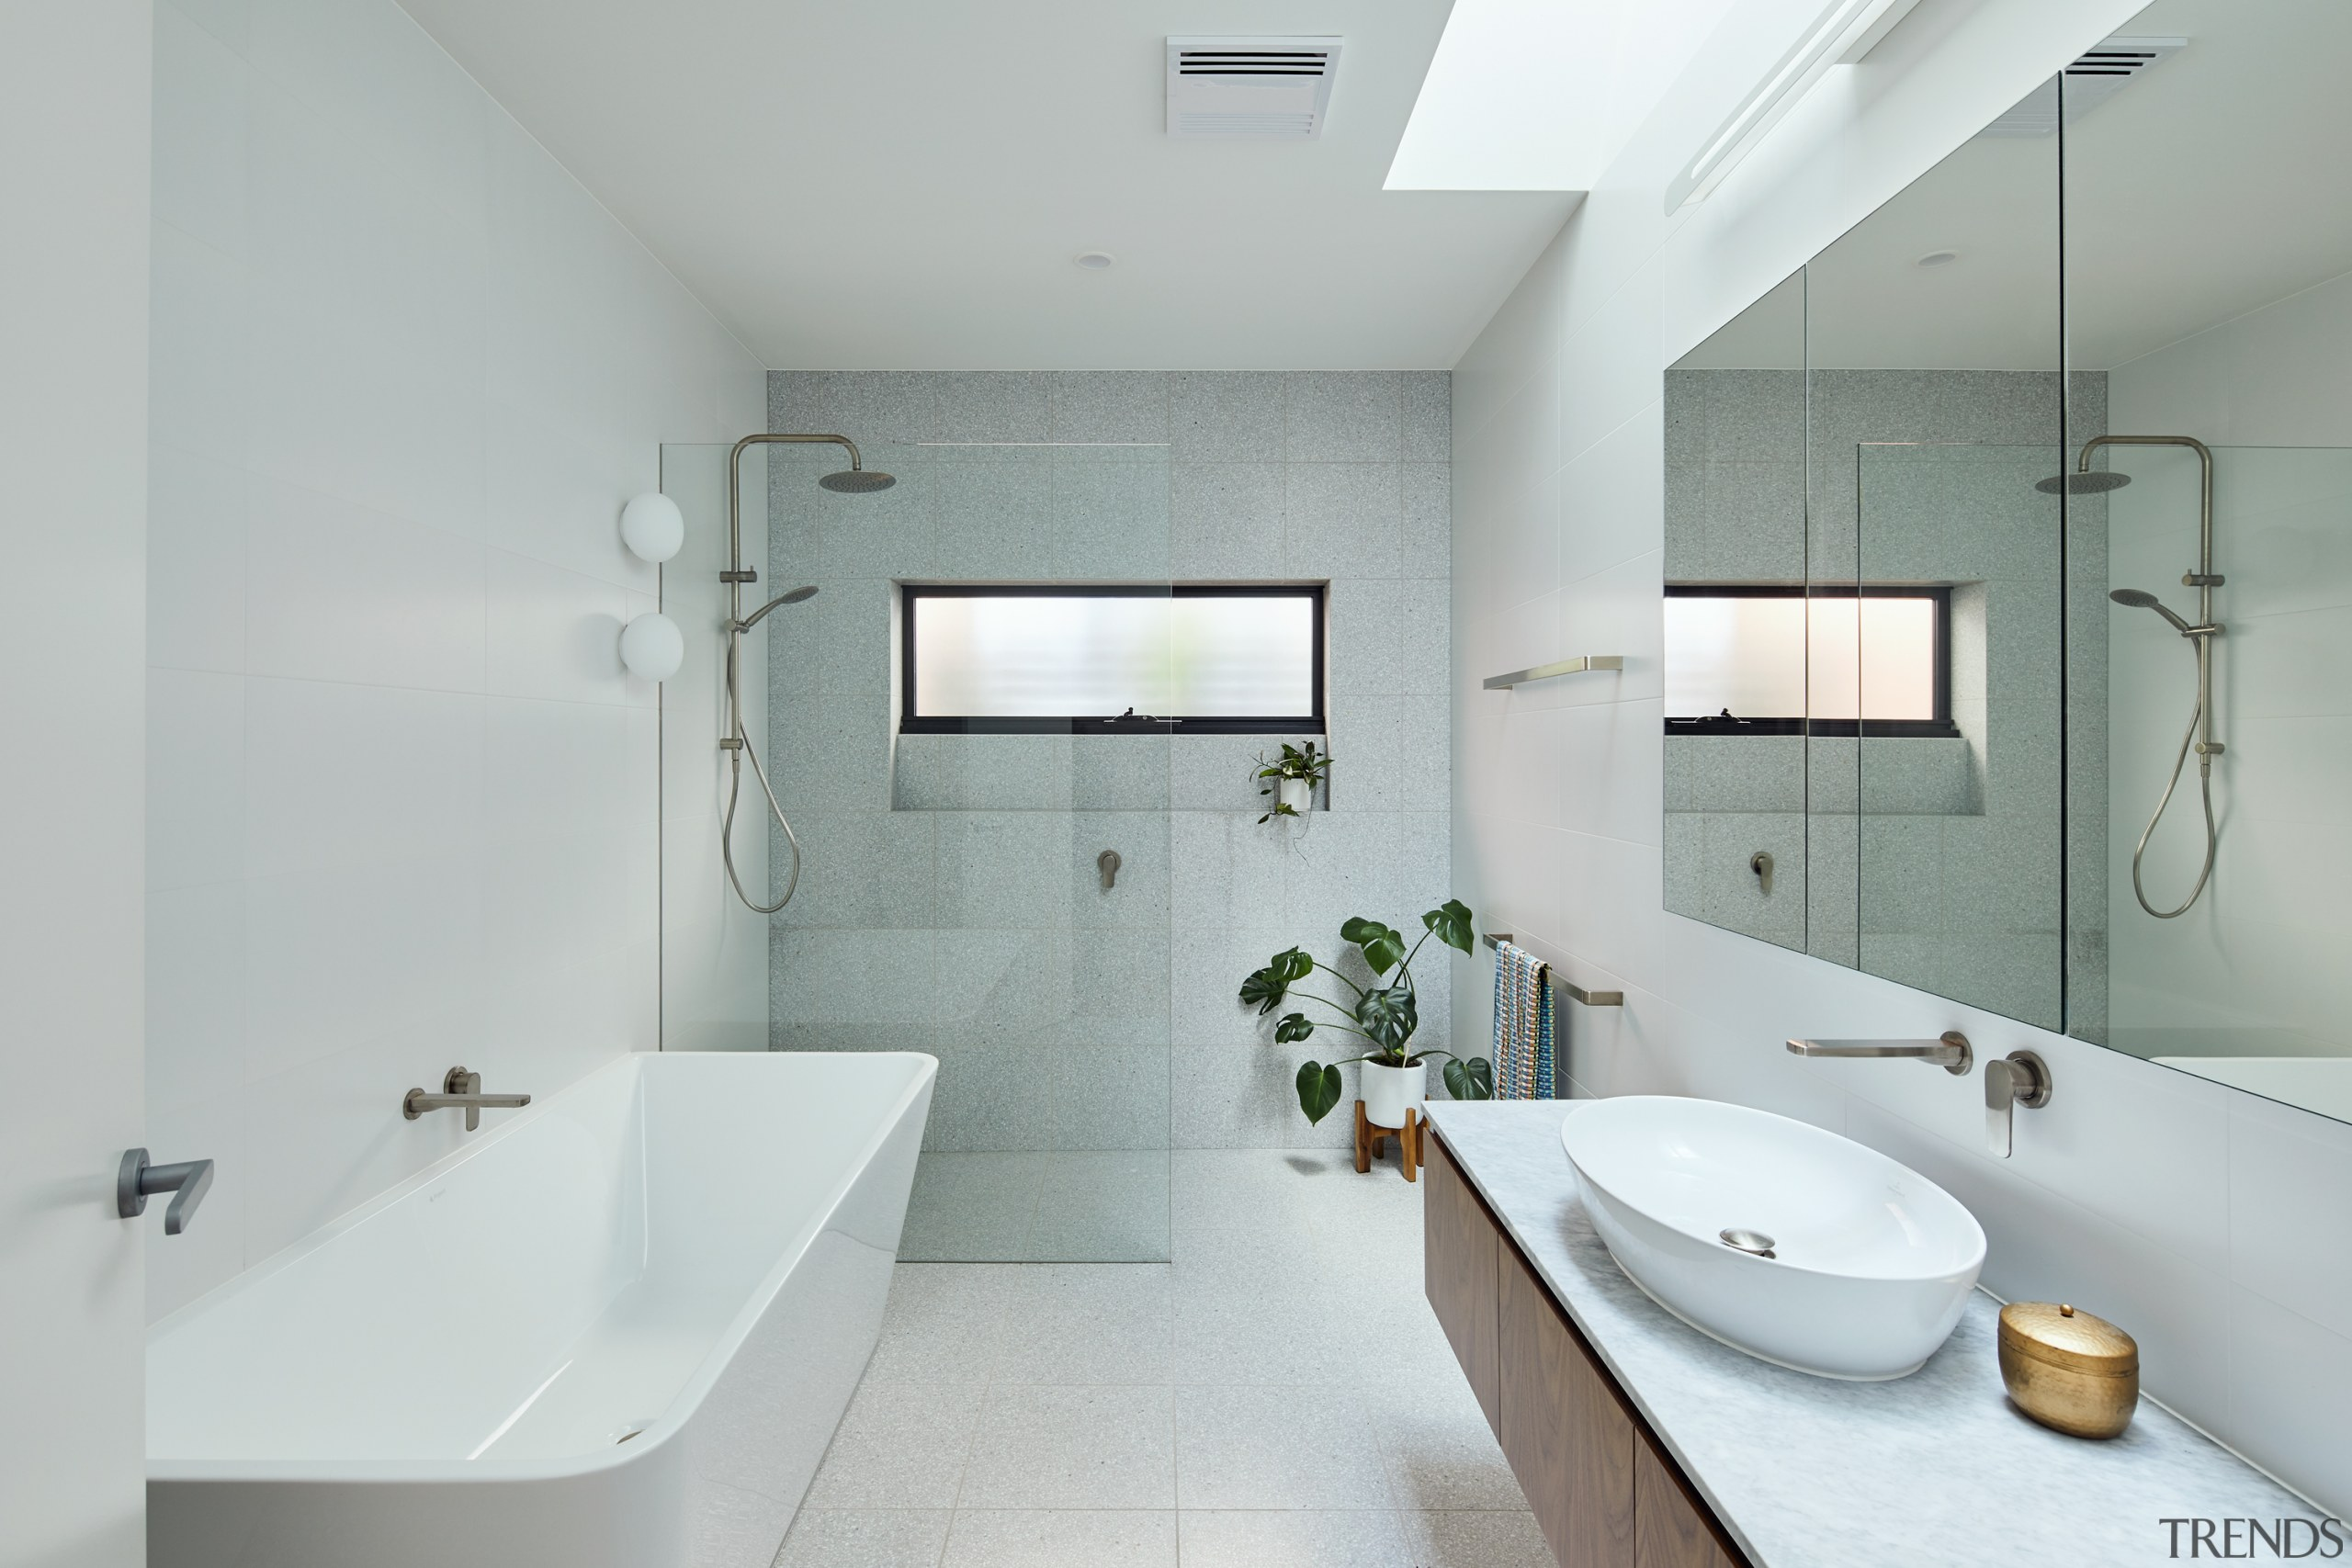 A skylight brings natural light into the main